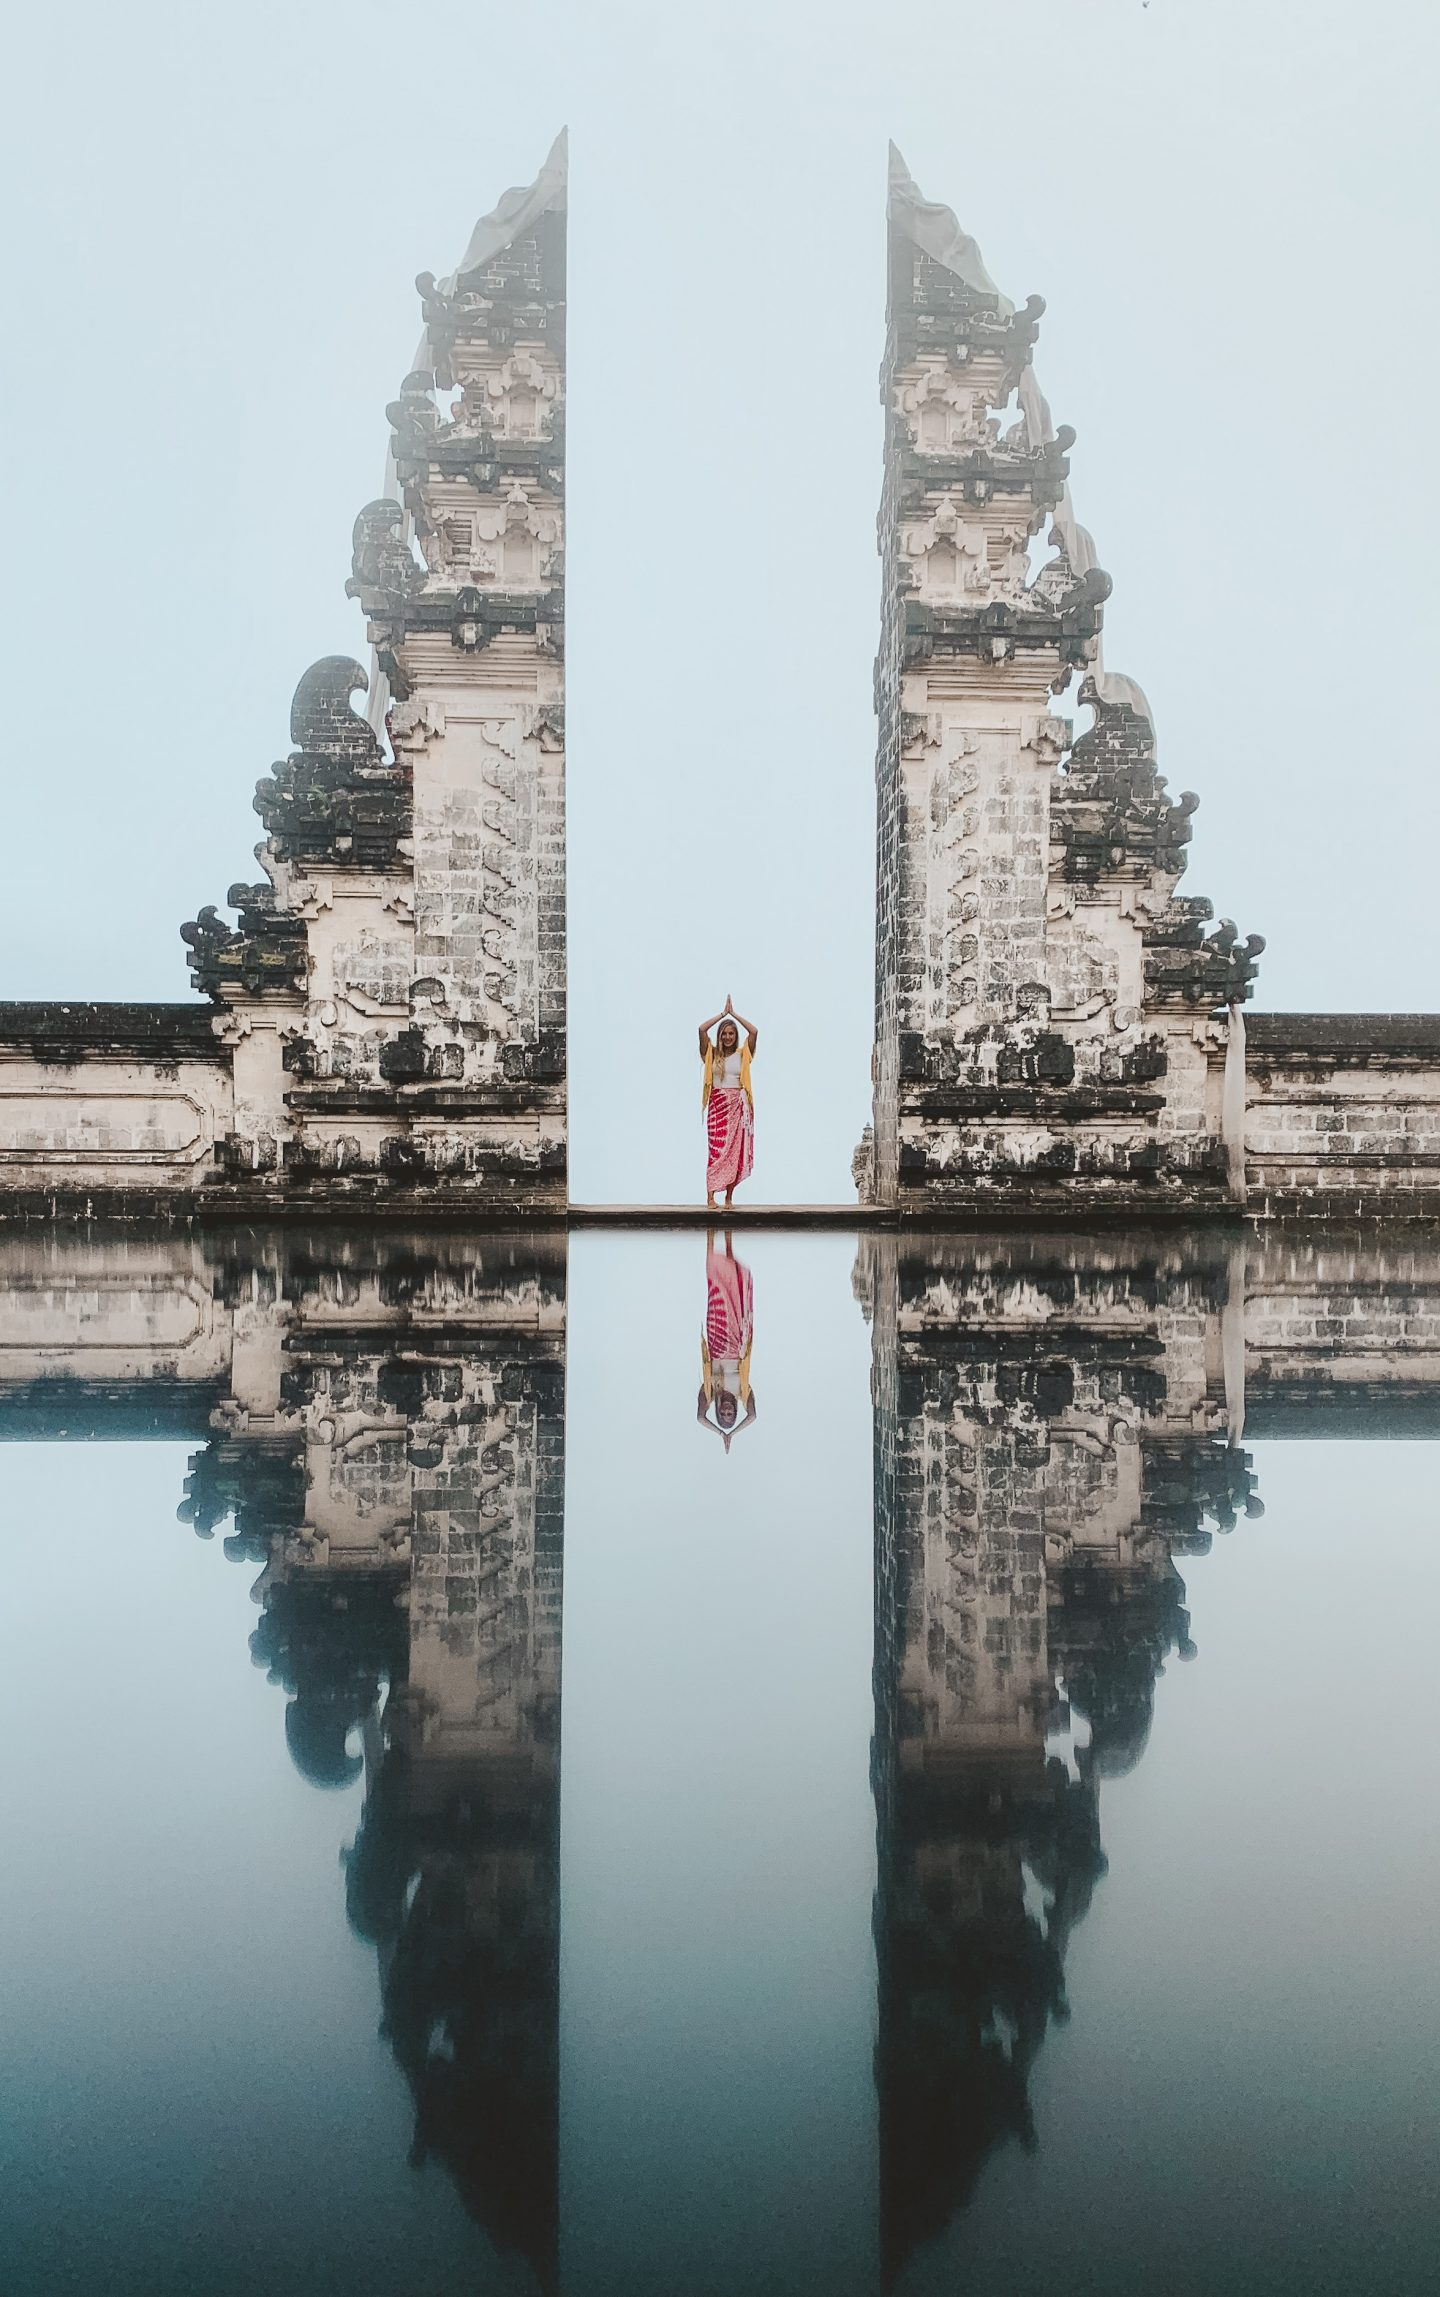 Standing in the Gates of Heaven at the Lempuyang Temple in Bali!